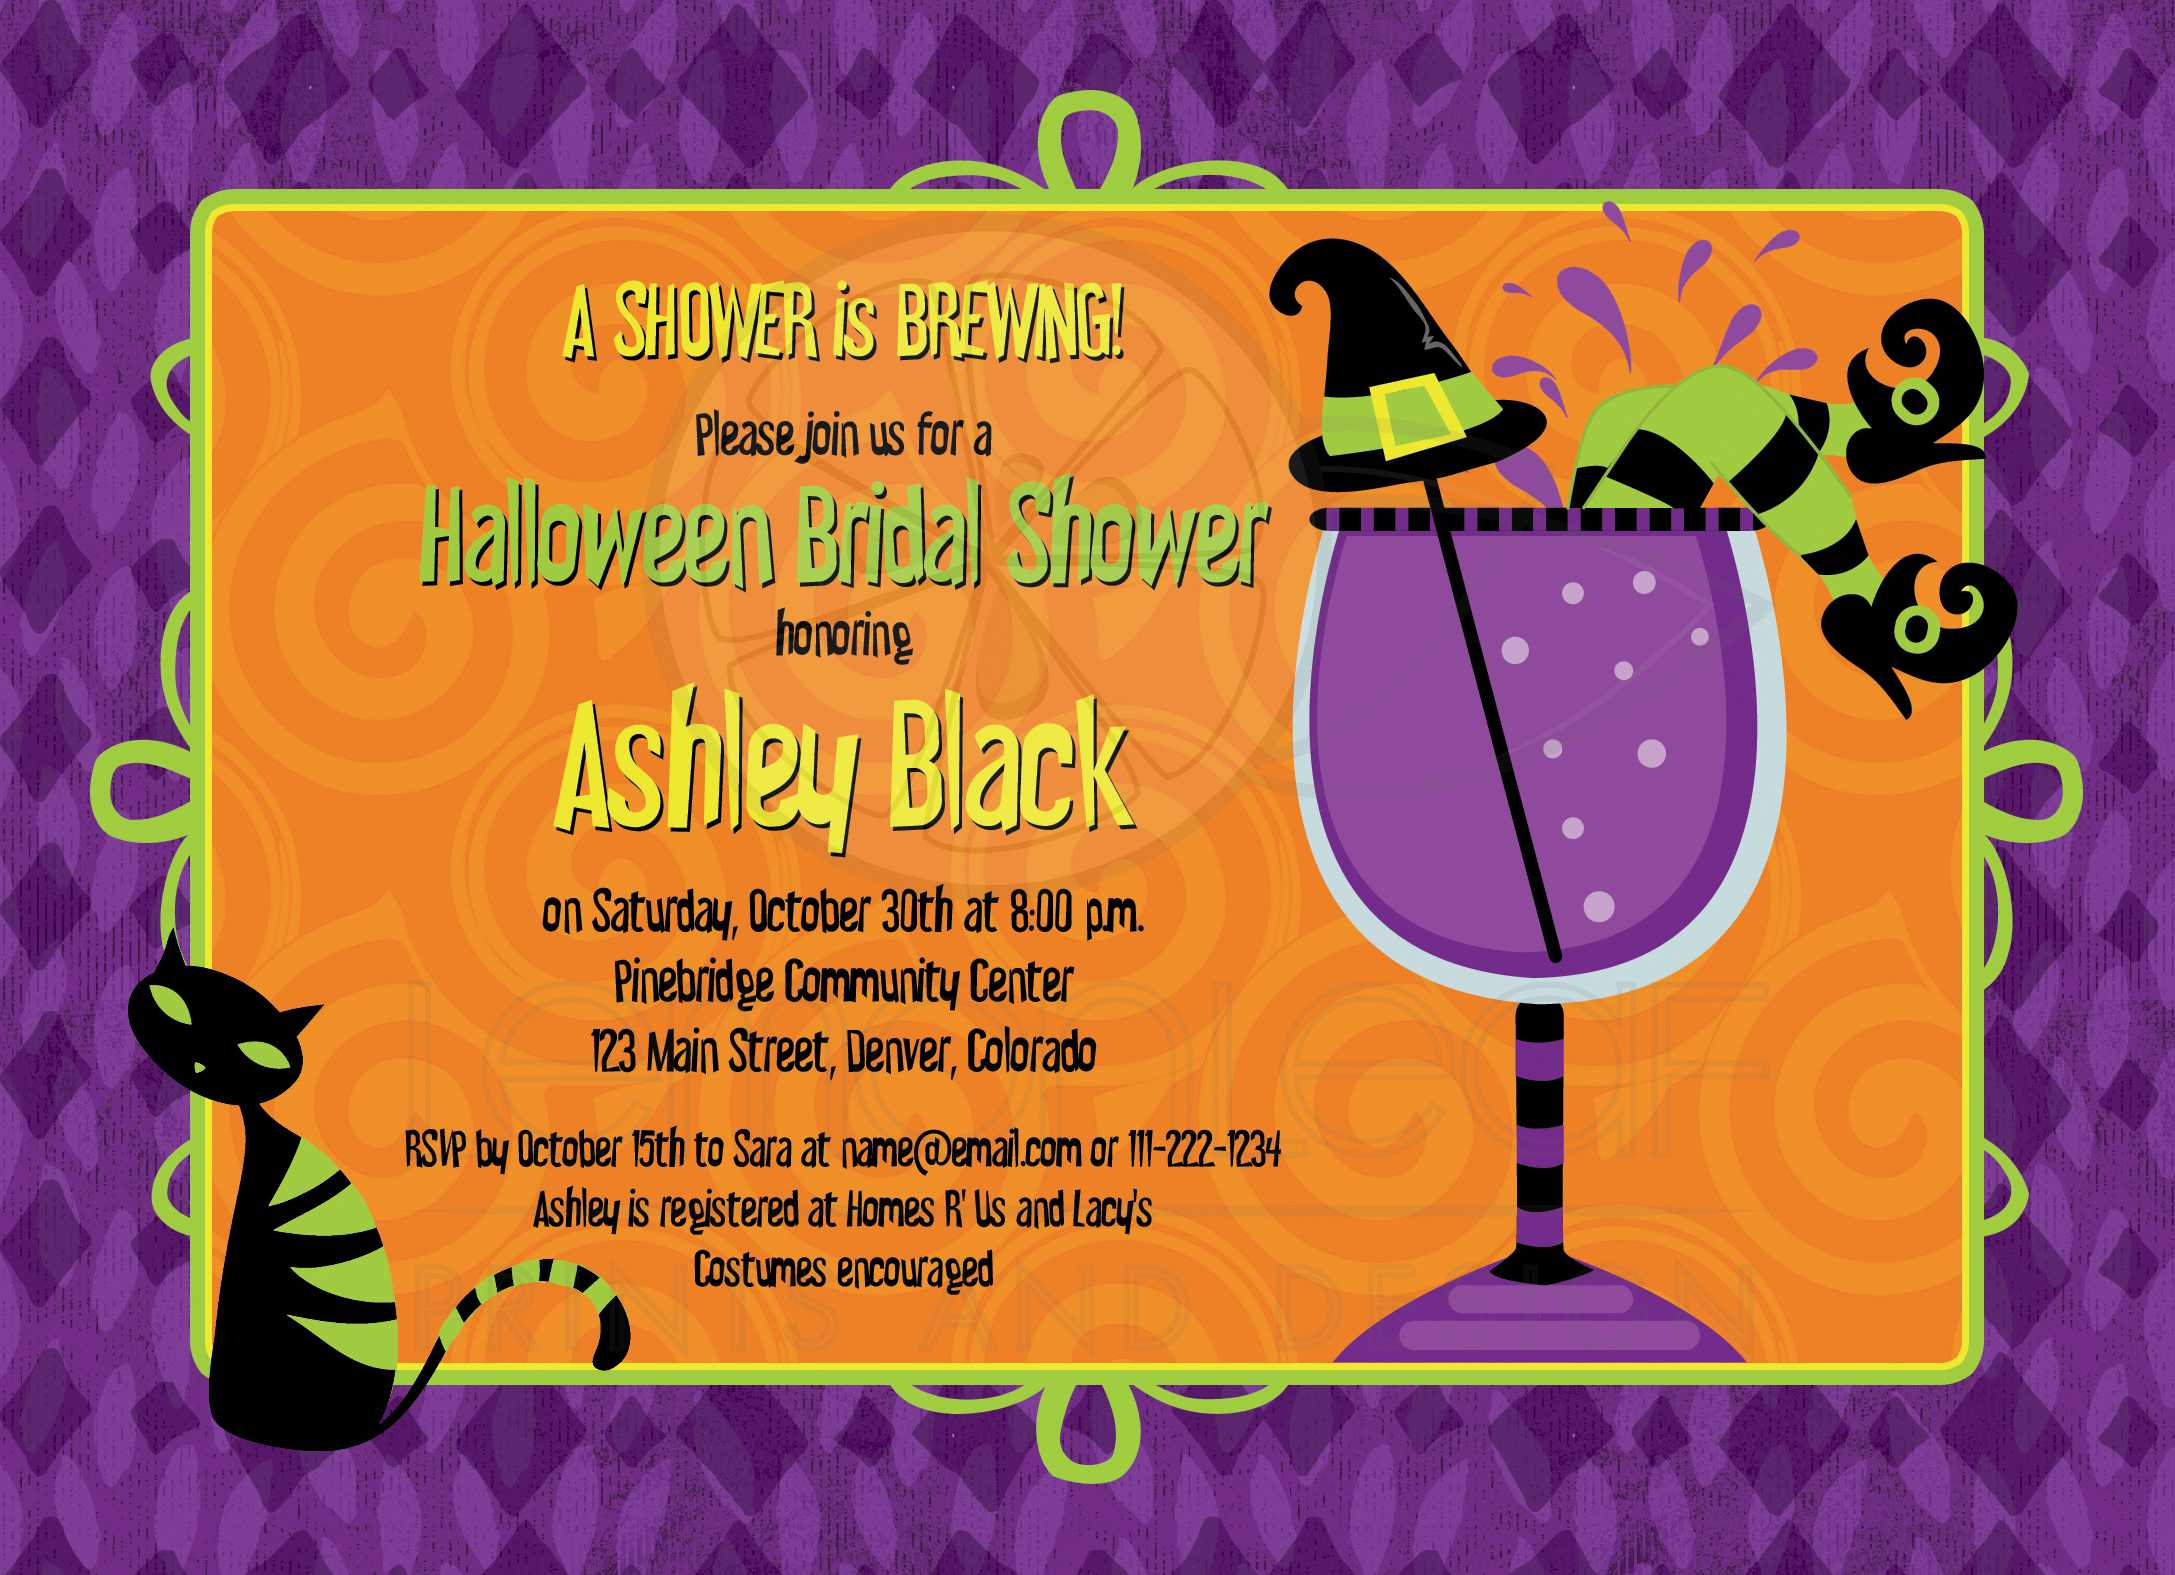 halloween bridal shower invitation witches brew cocktail party